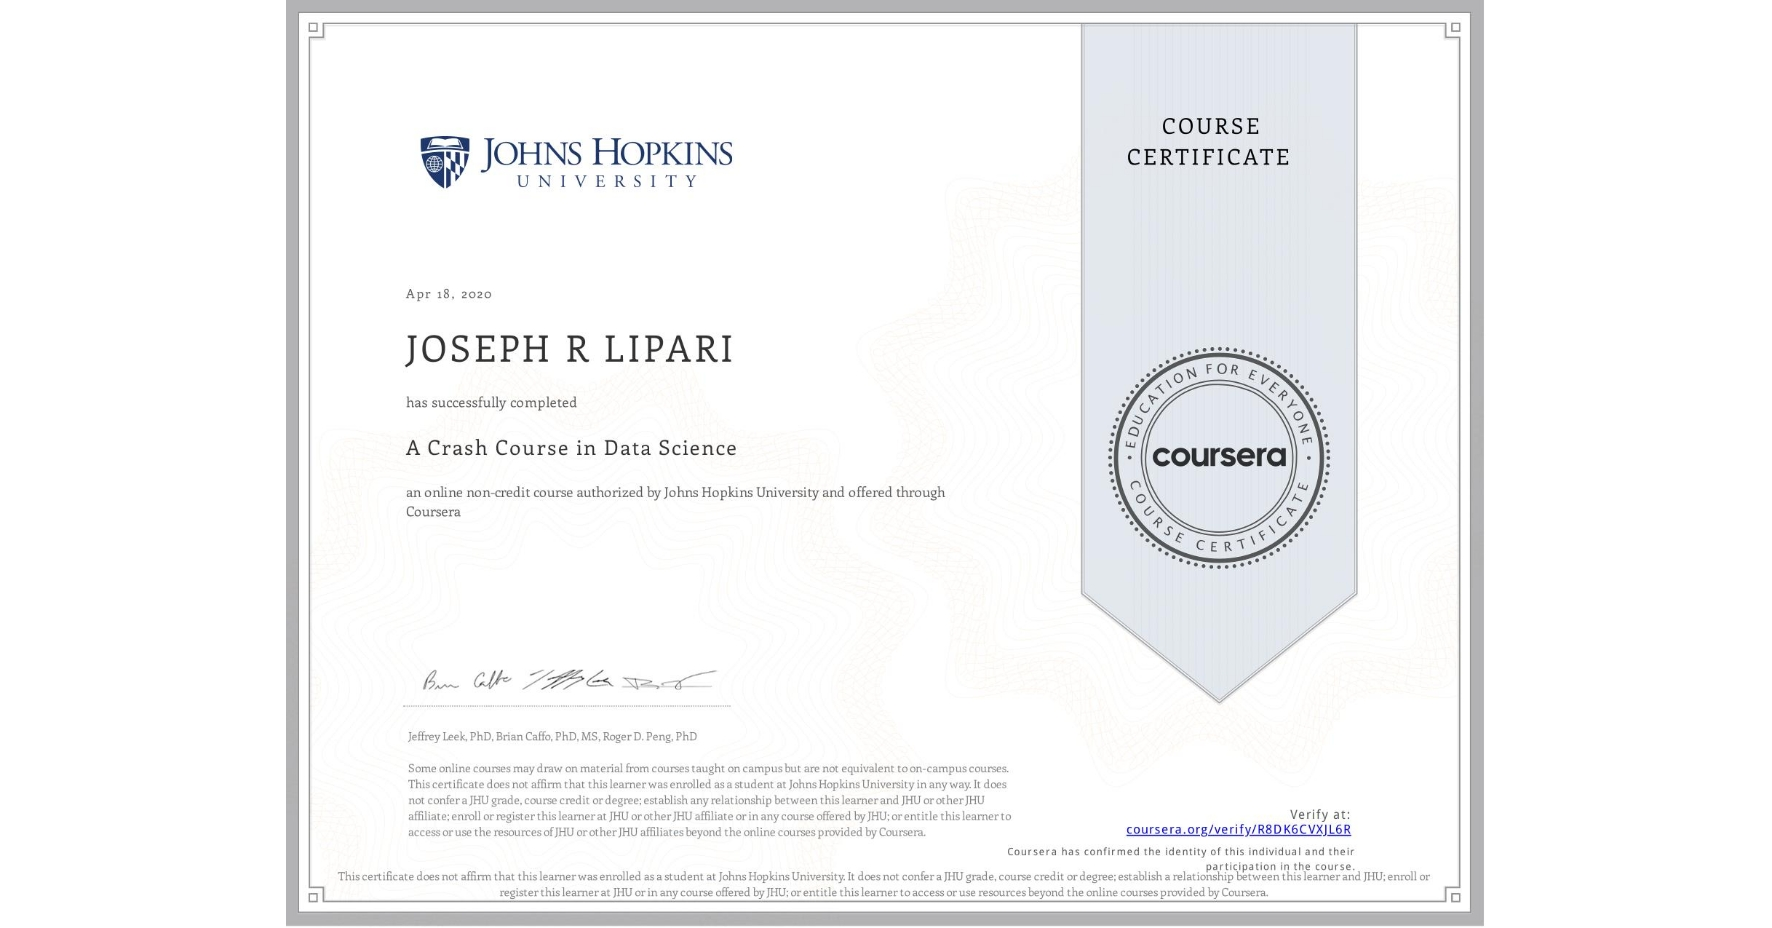 View certificate for JOSEPH R  LIPARI, A Crash Course in Data Science, an online non-credit course authorized by Johns Hopkins University and offered through Coursera